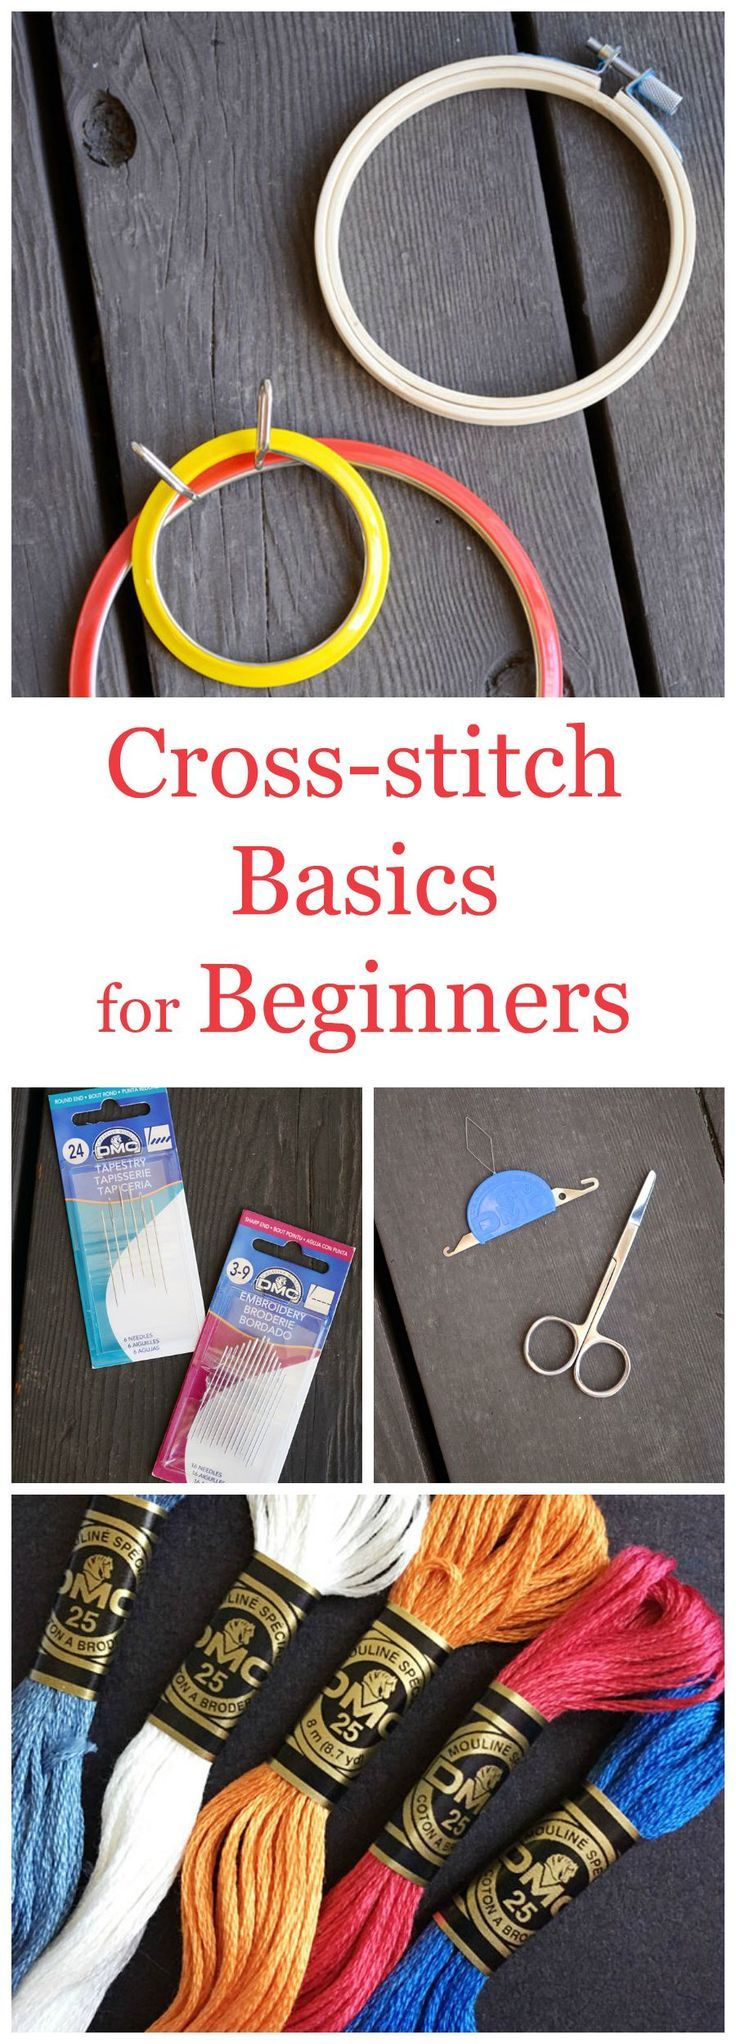 Cross-stitch Basics for Beginners | Storypiece.net